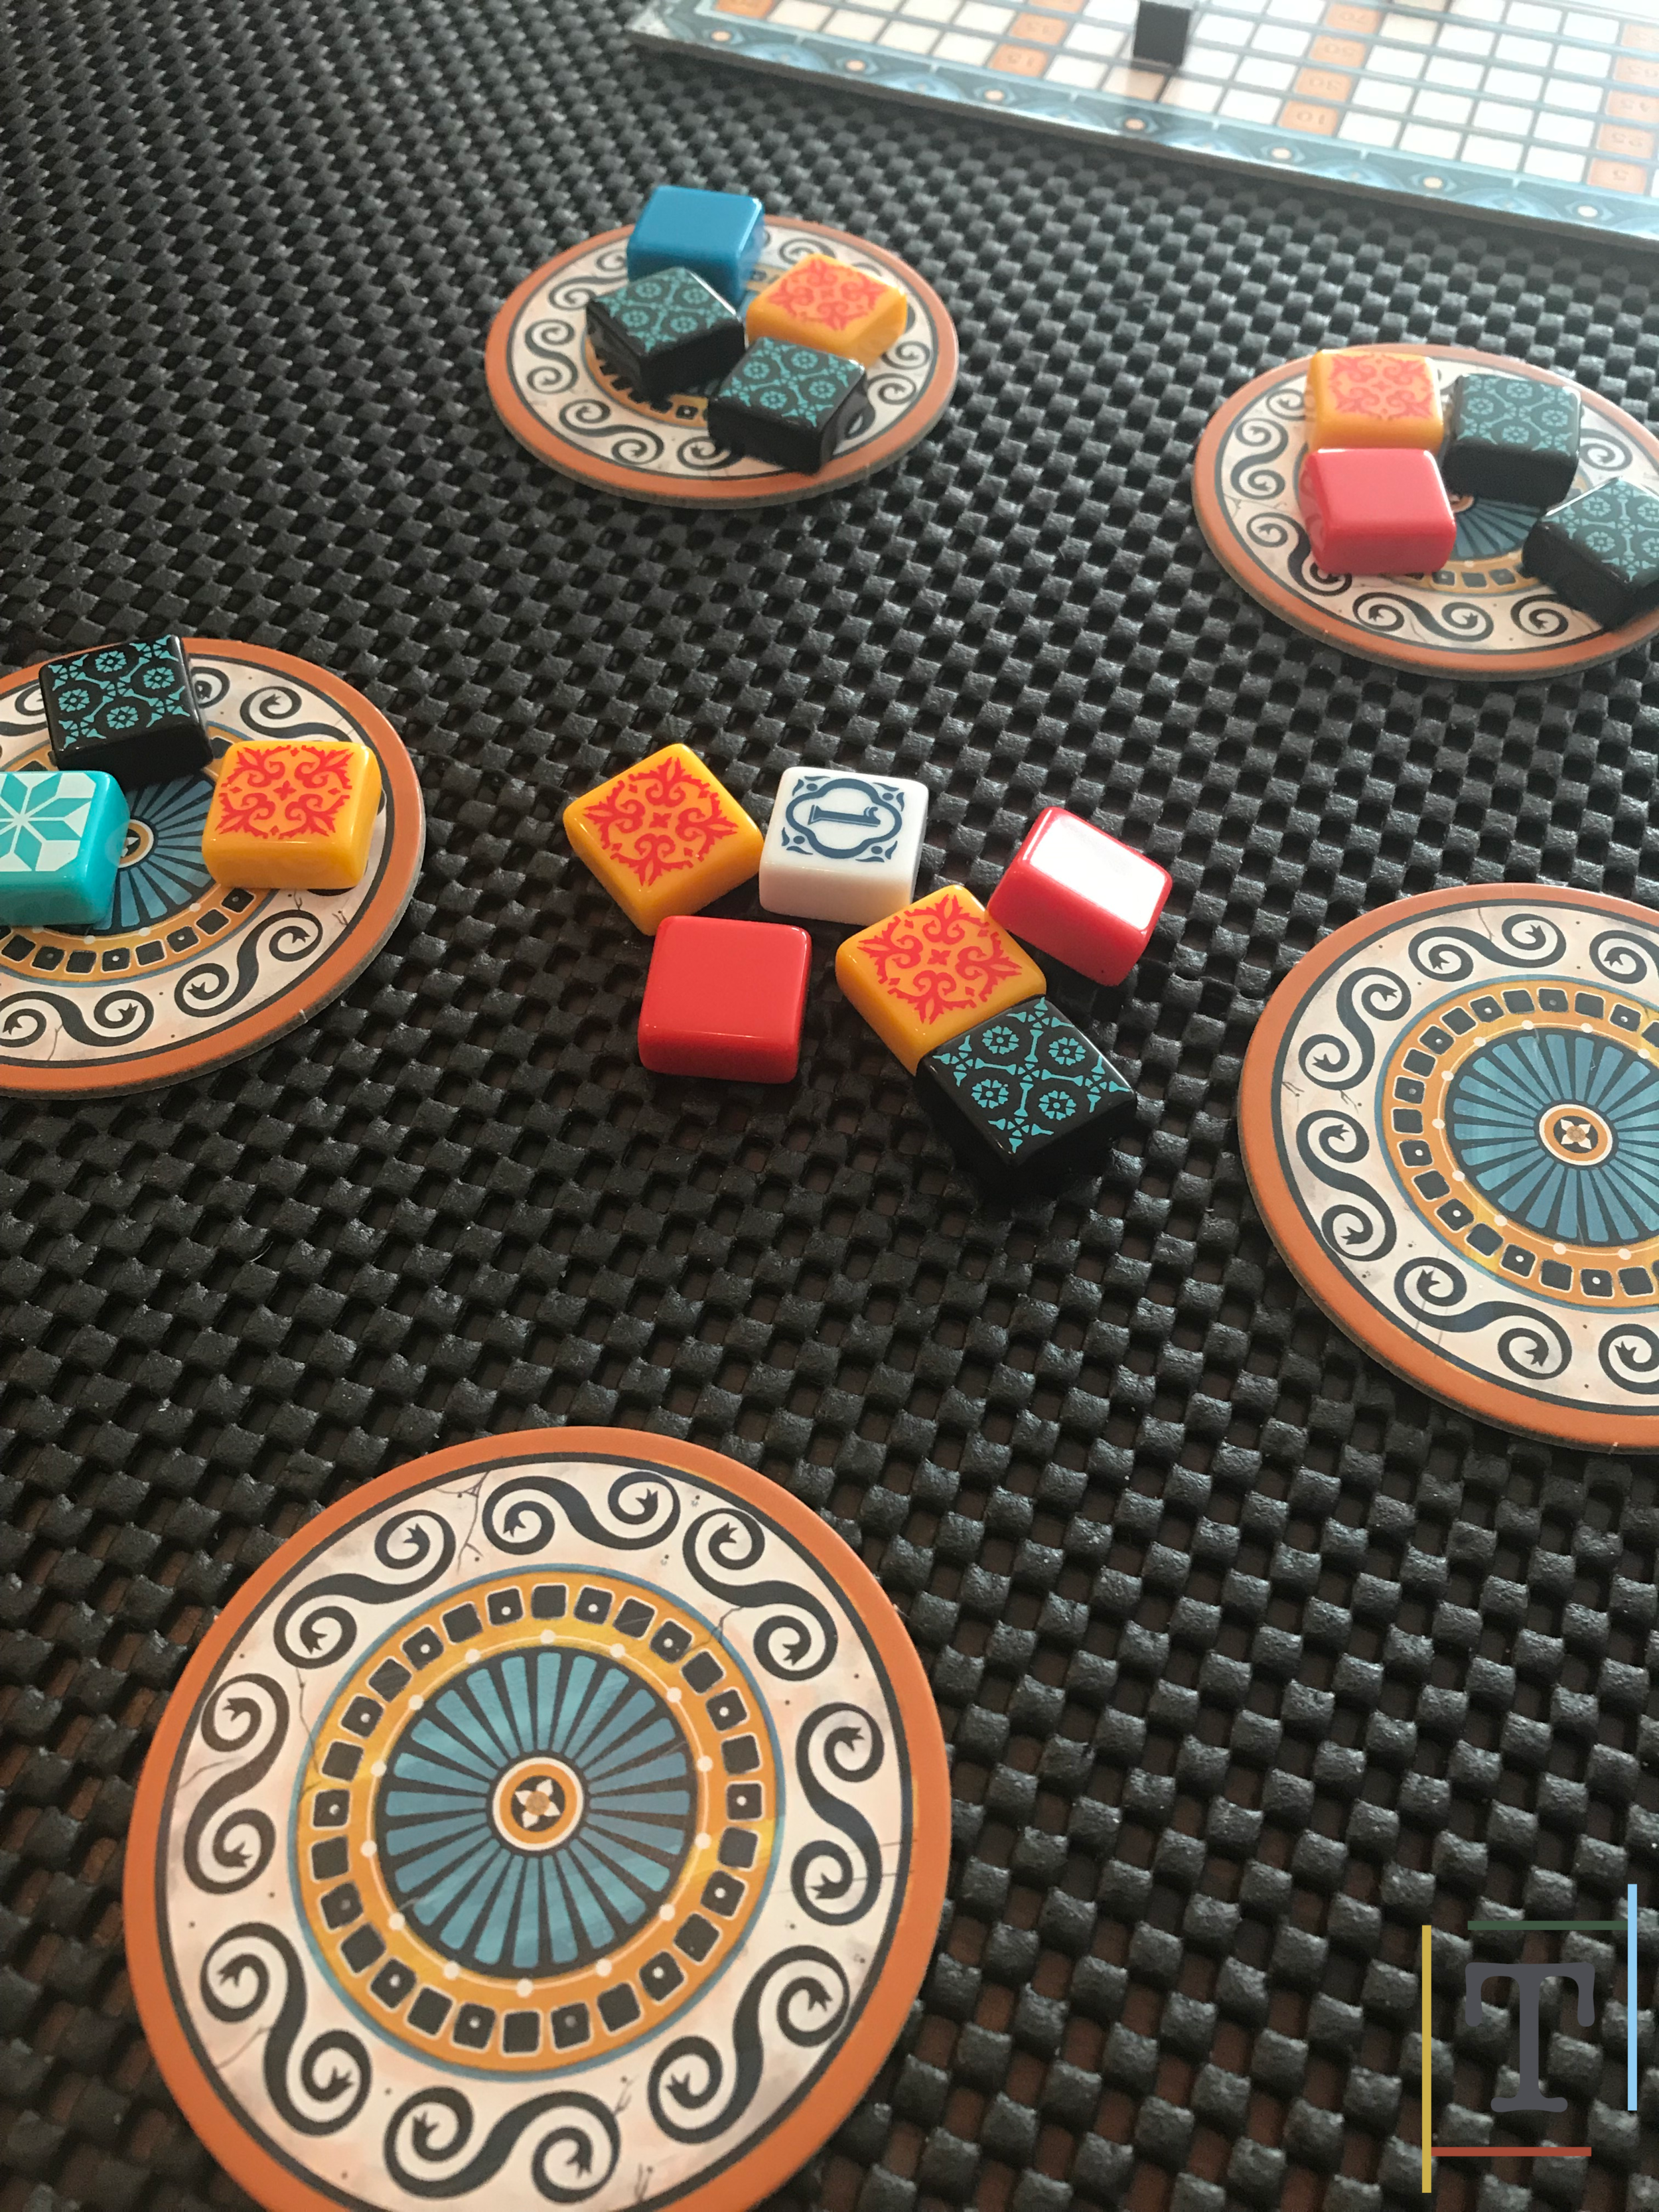 Players choose tiles from the factories or the middle of the factory area